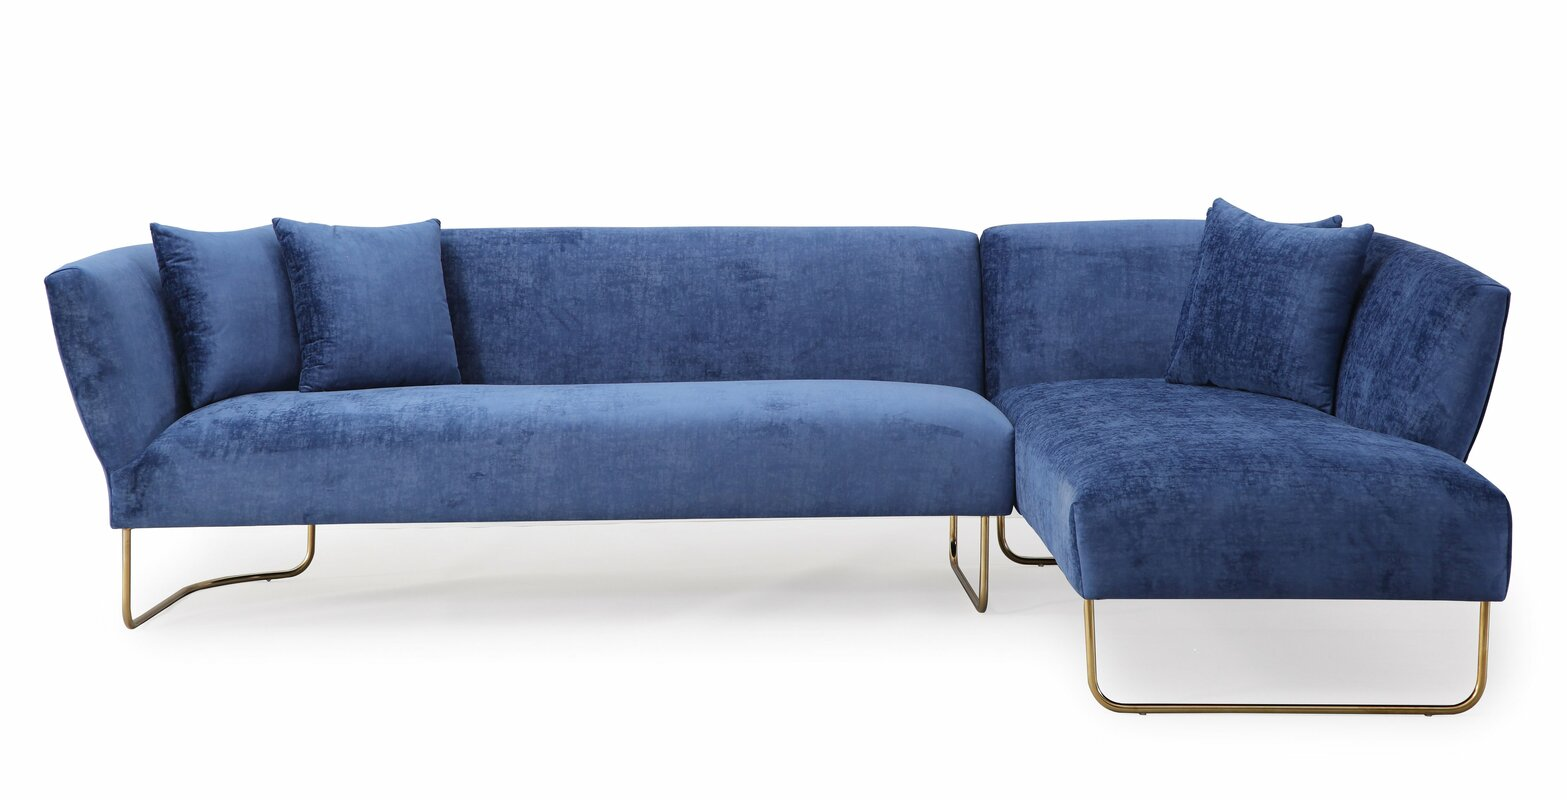 Velvet sectional sofas youll love wayfair pelle sectional parisarafo Image collections